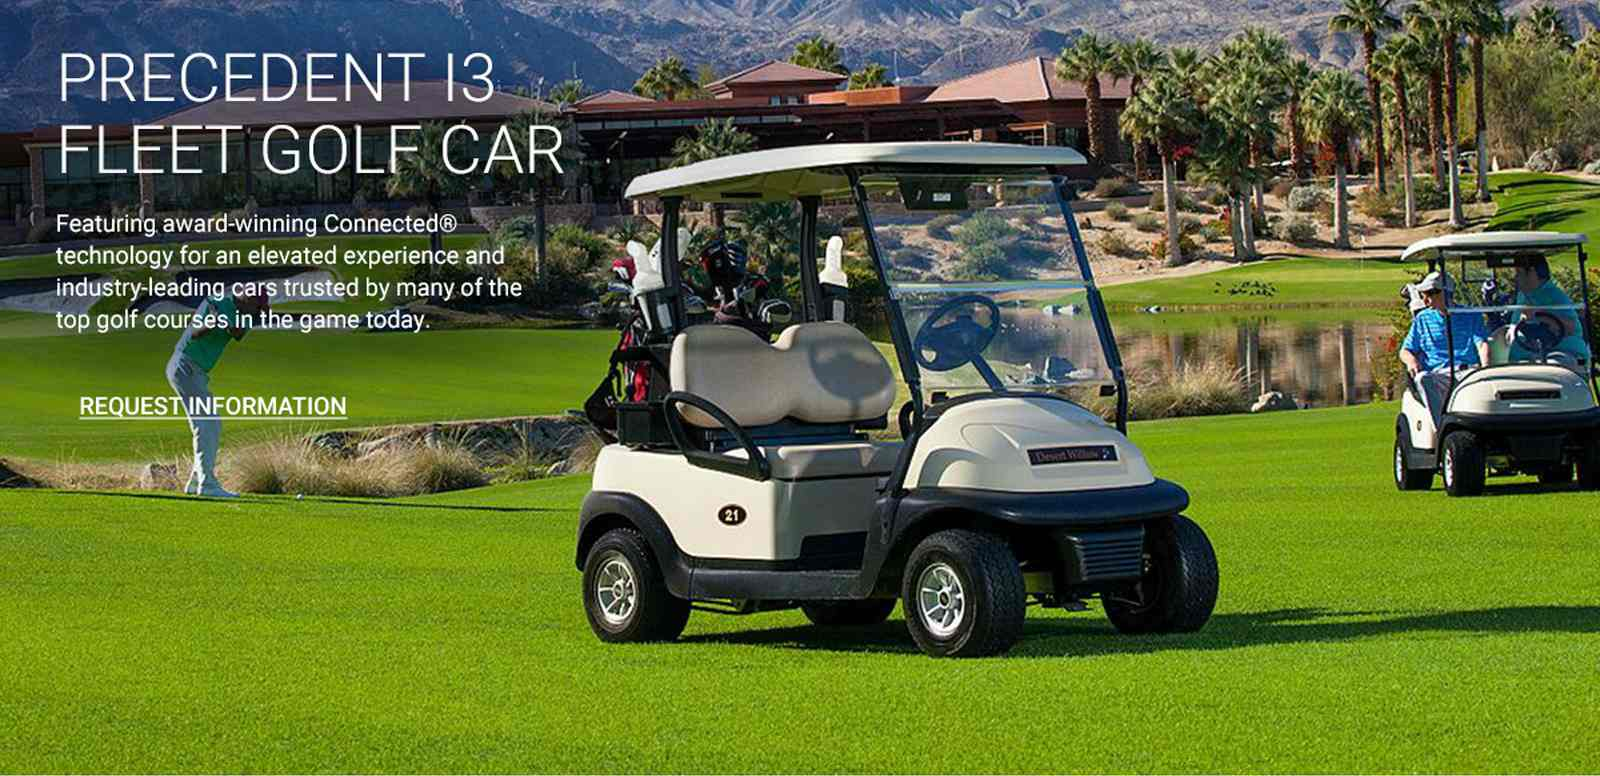 El coche de golf Precedent i3 de Club Car